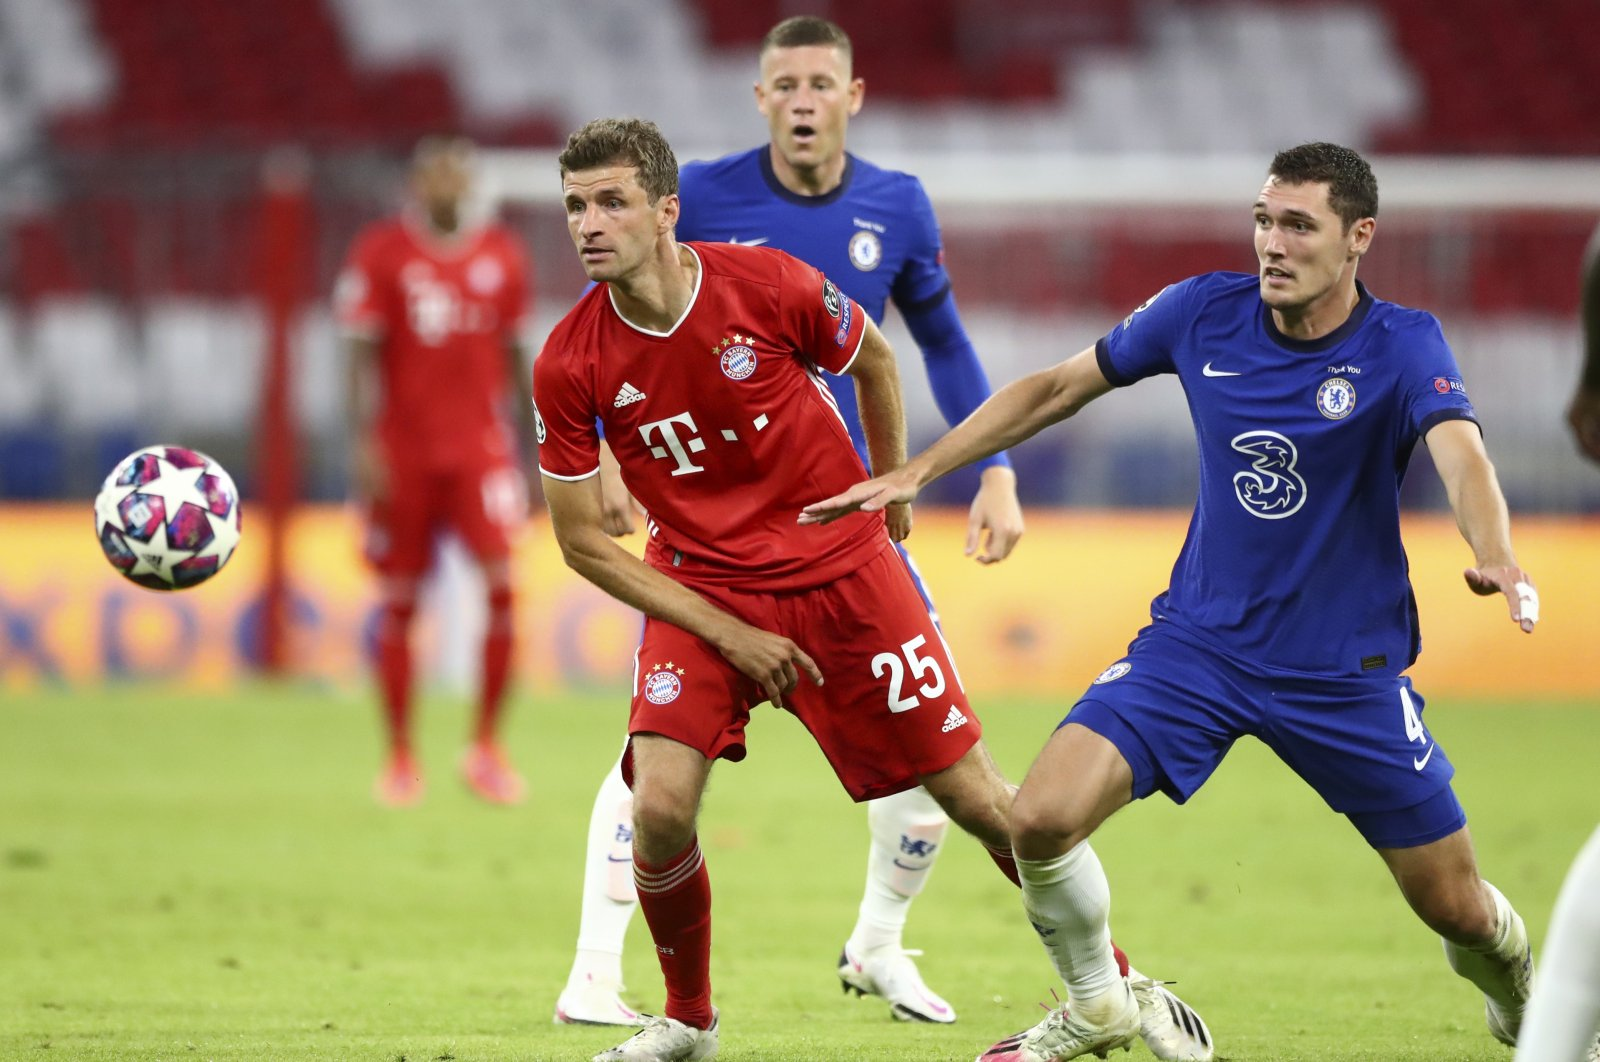 Bayern's Thomas Mueller (L) and Chelsea's Andreas Chistensen chase the ball during the Champions League match in Munich, Germany, Aug. 8, 2020. (AP Photo)